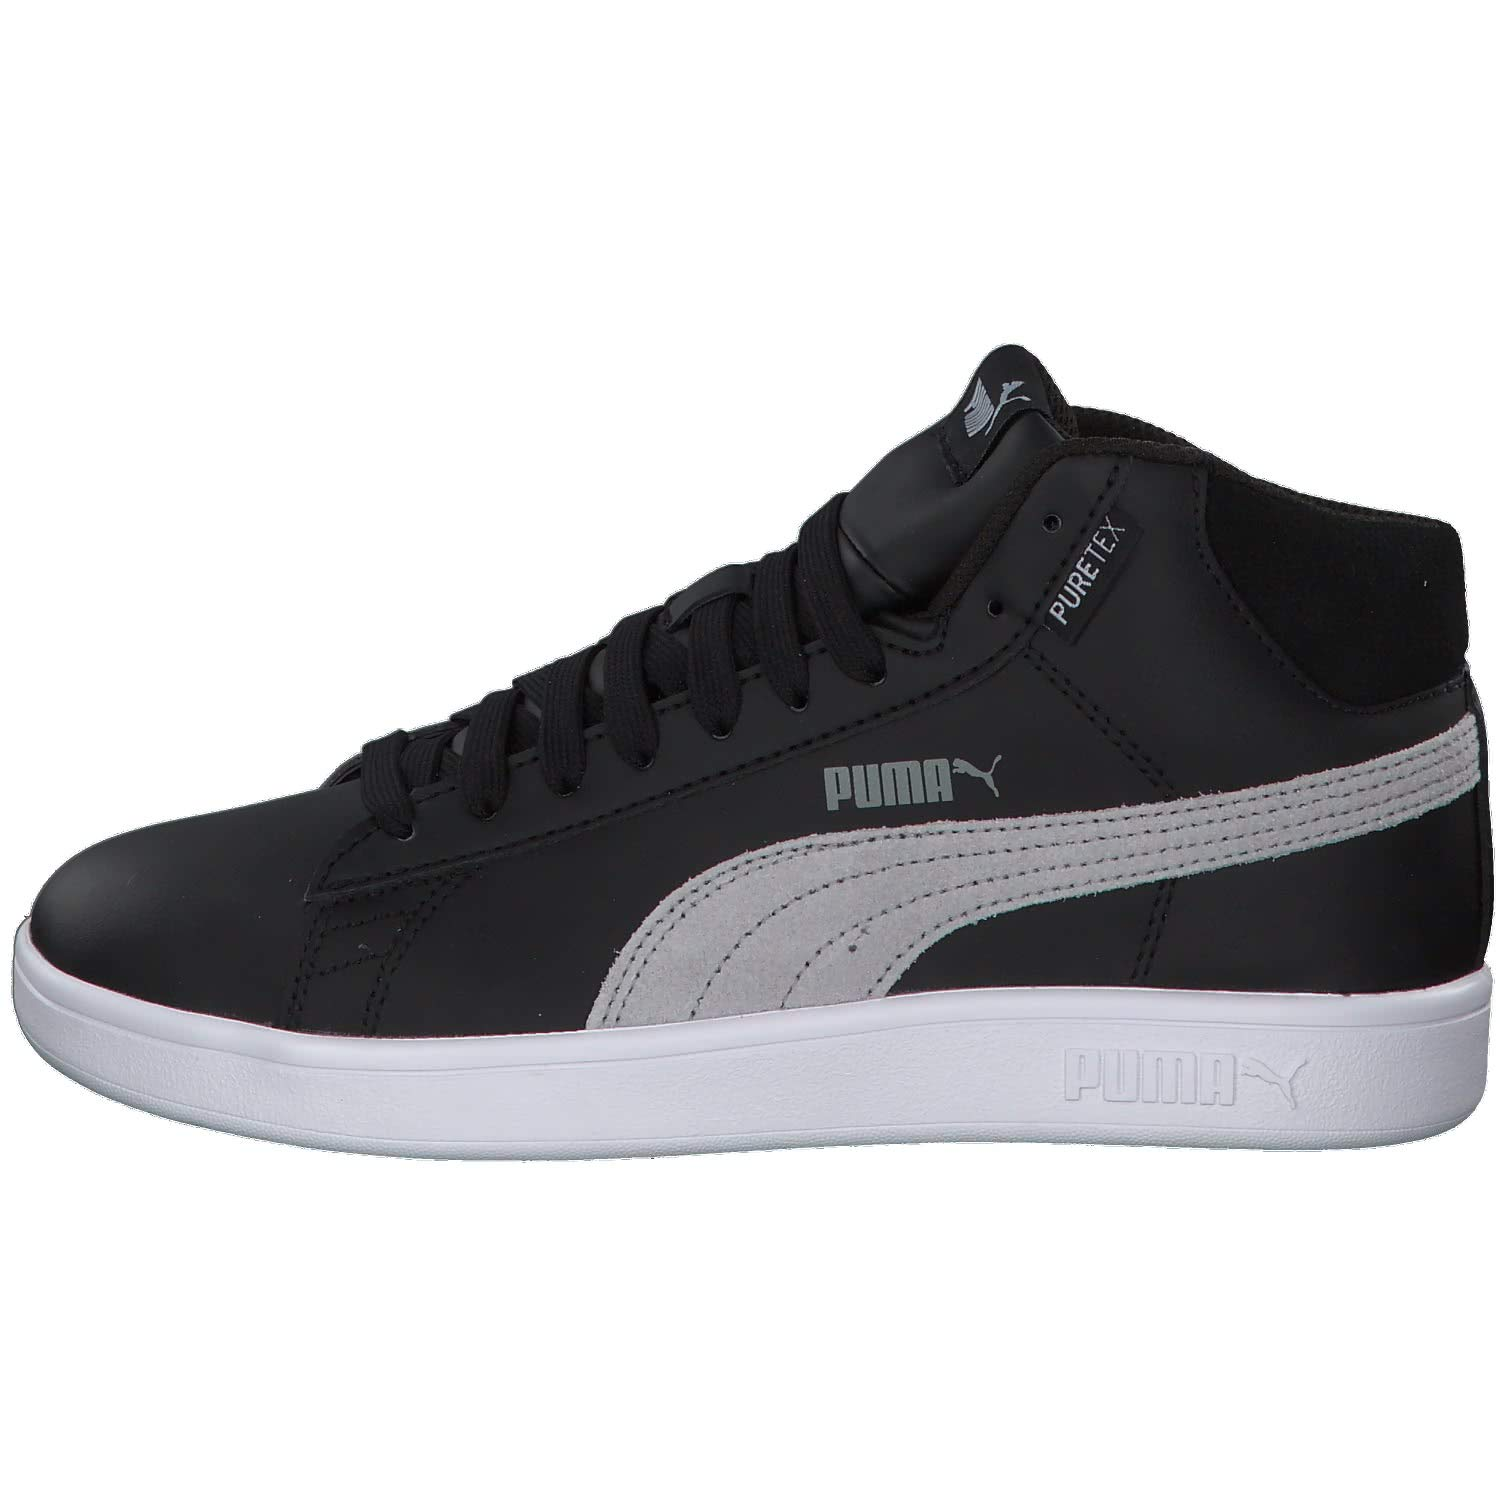 Puma Smash v2 Mid PureTEX JR Kids Unisex Sneaker Black